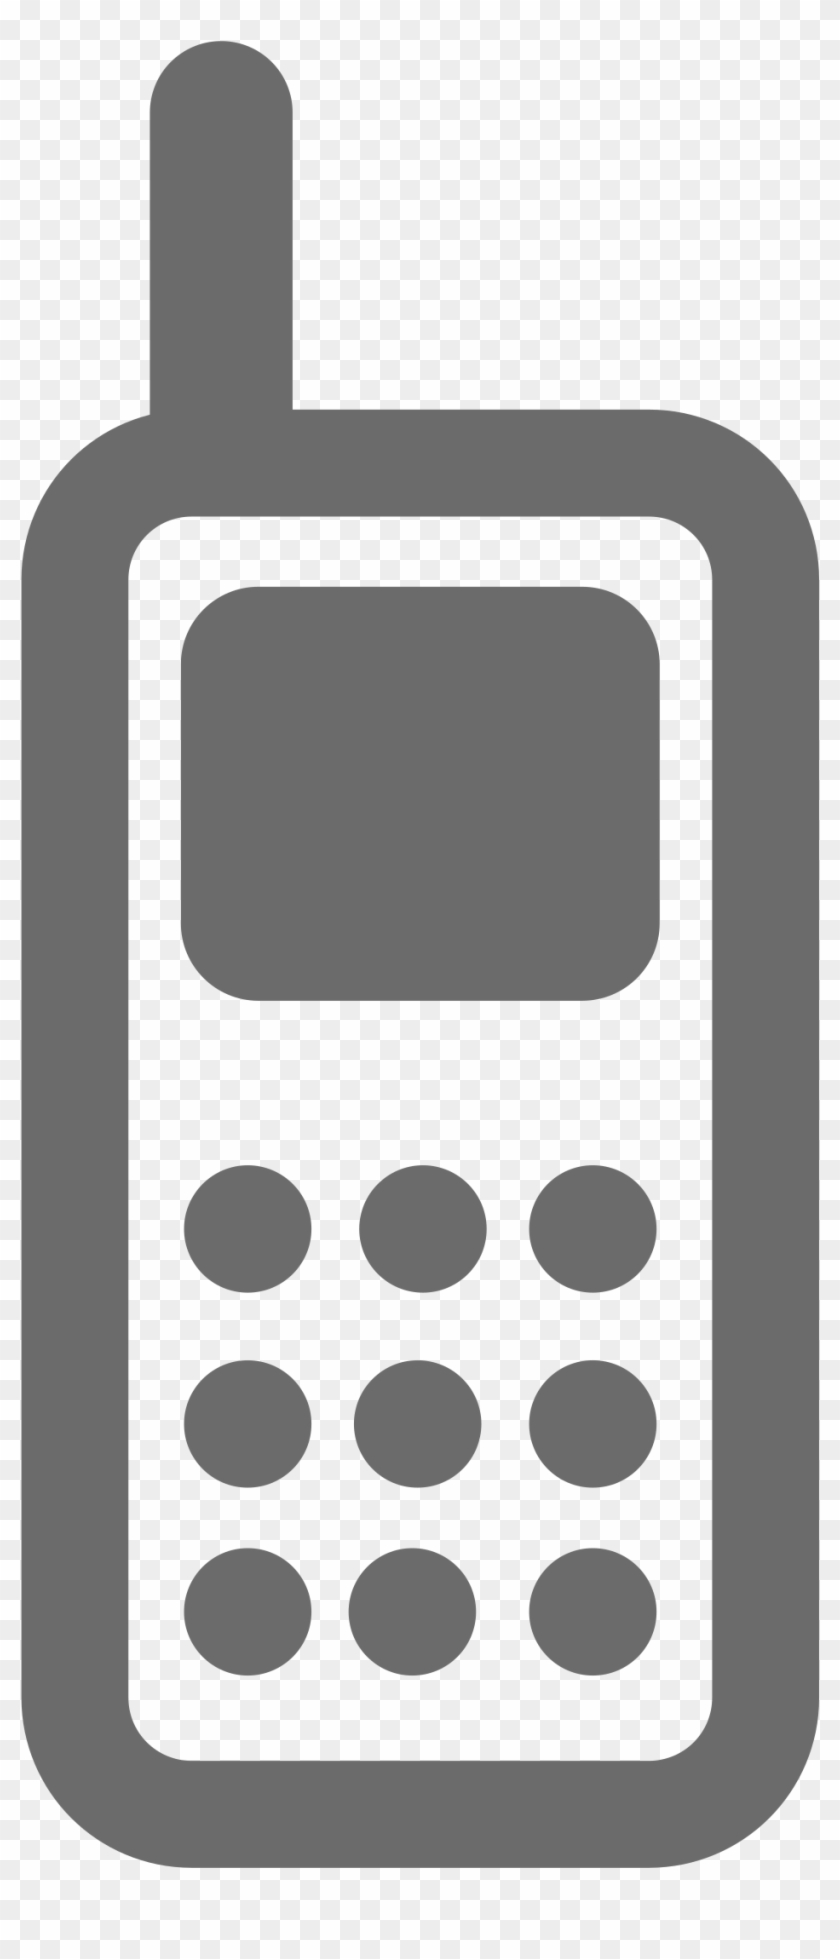 Hd Cell Phone Logo Vector Image - Cell Phone Logo Png #263550